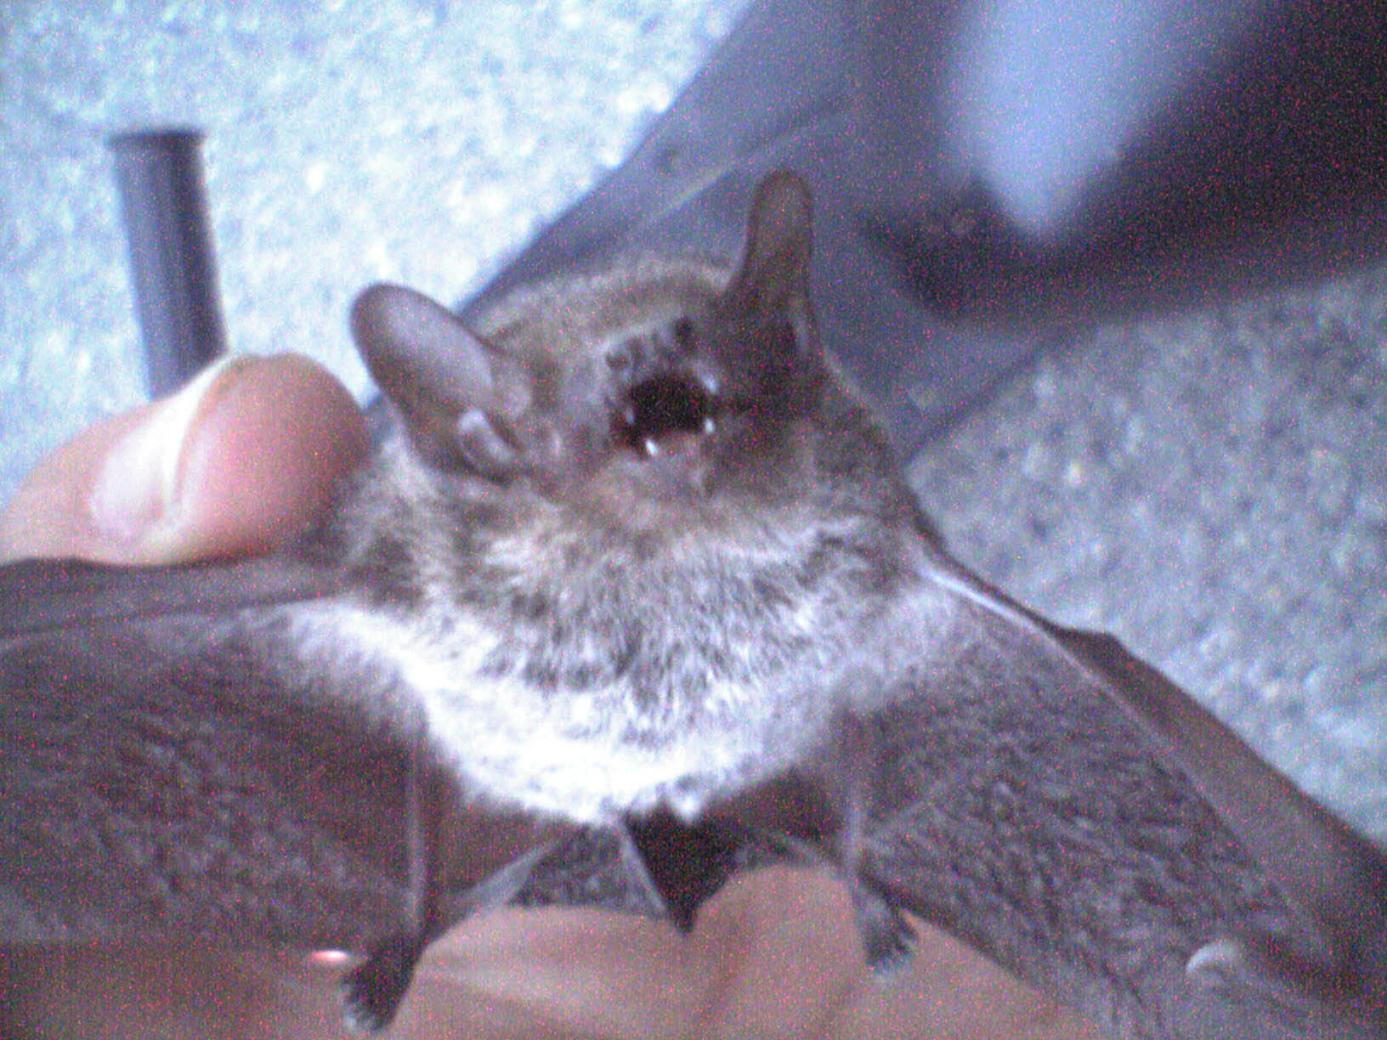 https://upload.wikimedia.org/wikipedia/commons/e/e4/Pipistrellus_abramus.jpg